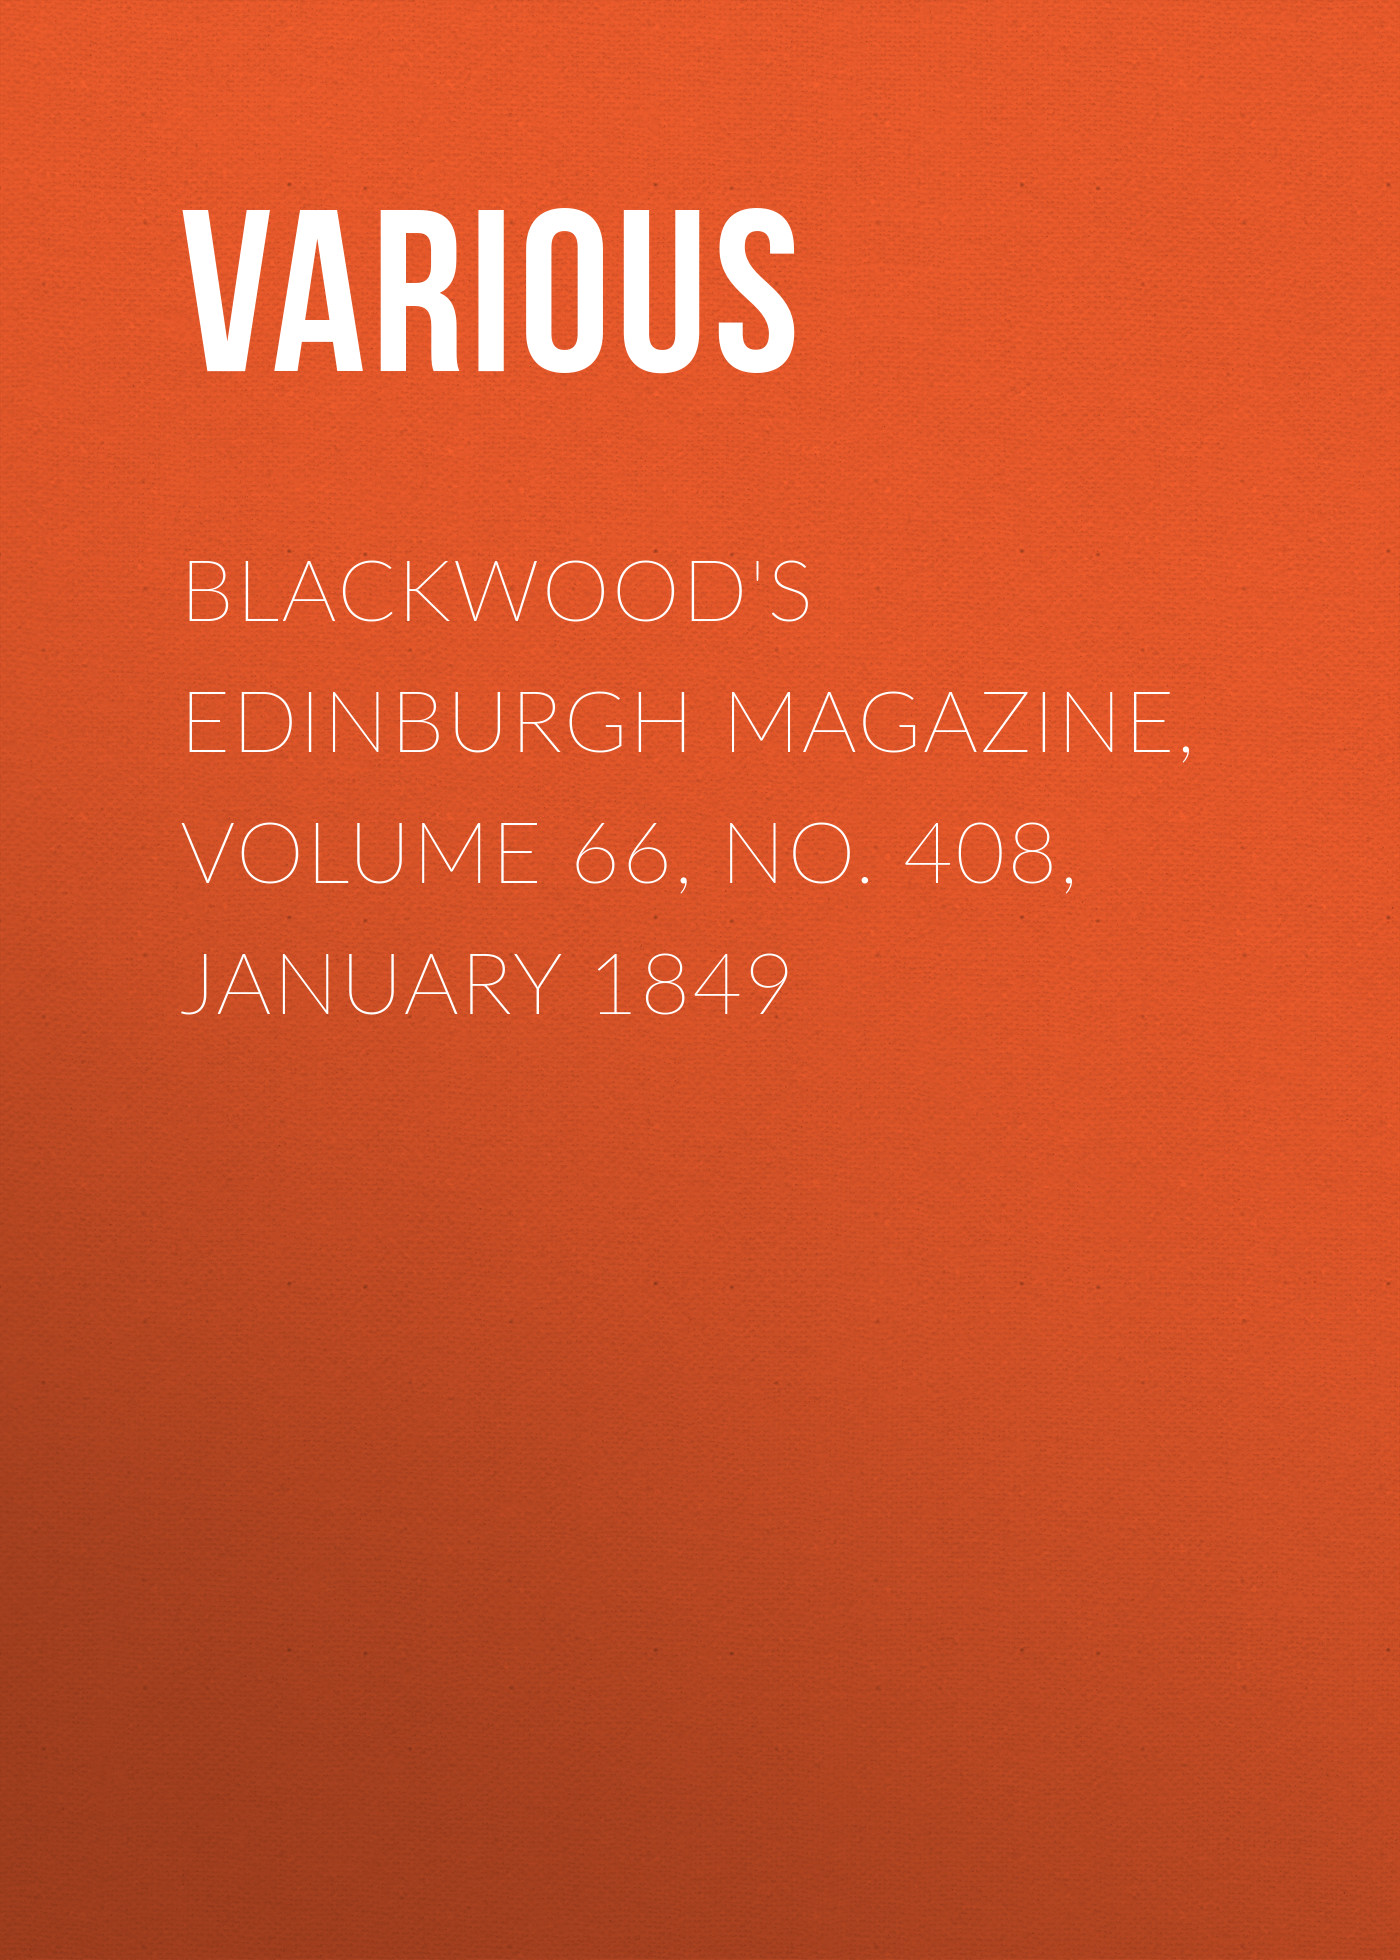 Various Blackwood's Edinburgh Magazine, Volume 66, No. 408, January 1849 various blackwood s edinburgh magazine volume 67 no 411 january 1850